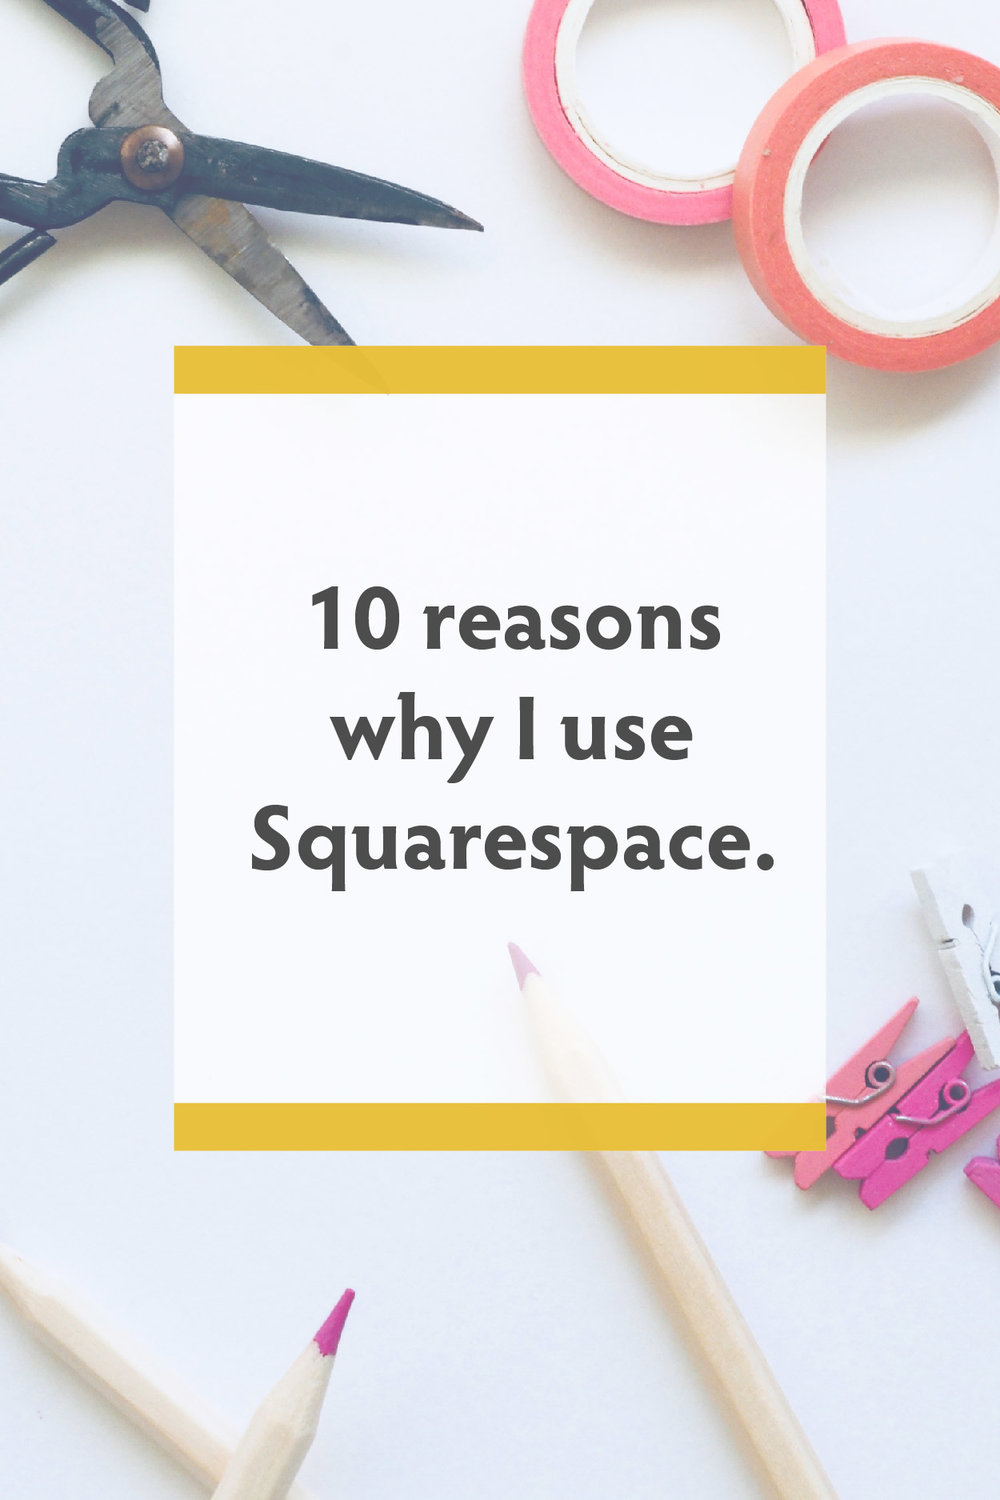 10 reasons I use squarespace- graphic design Coffs Harbour.jpg